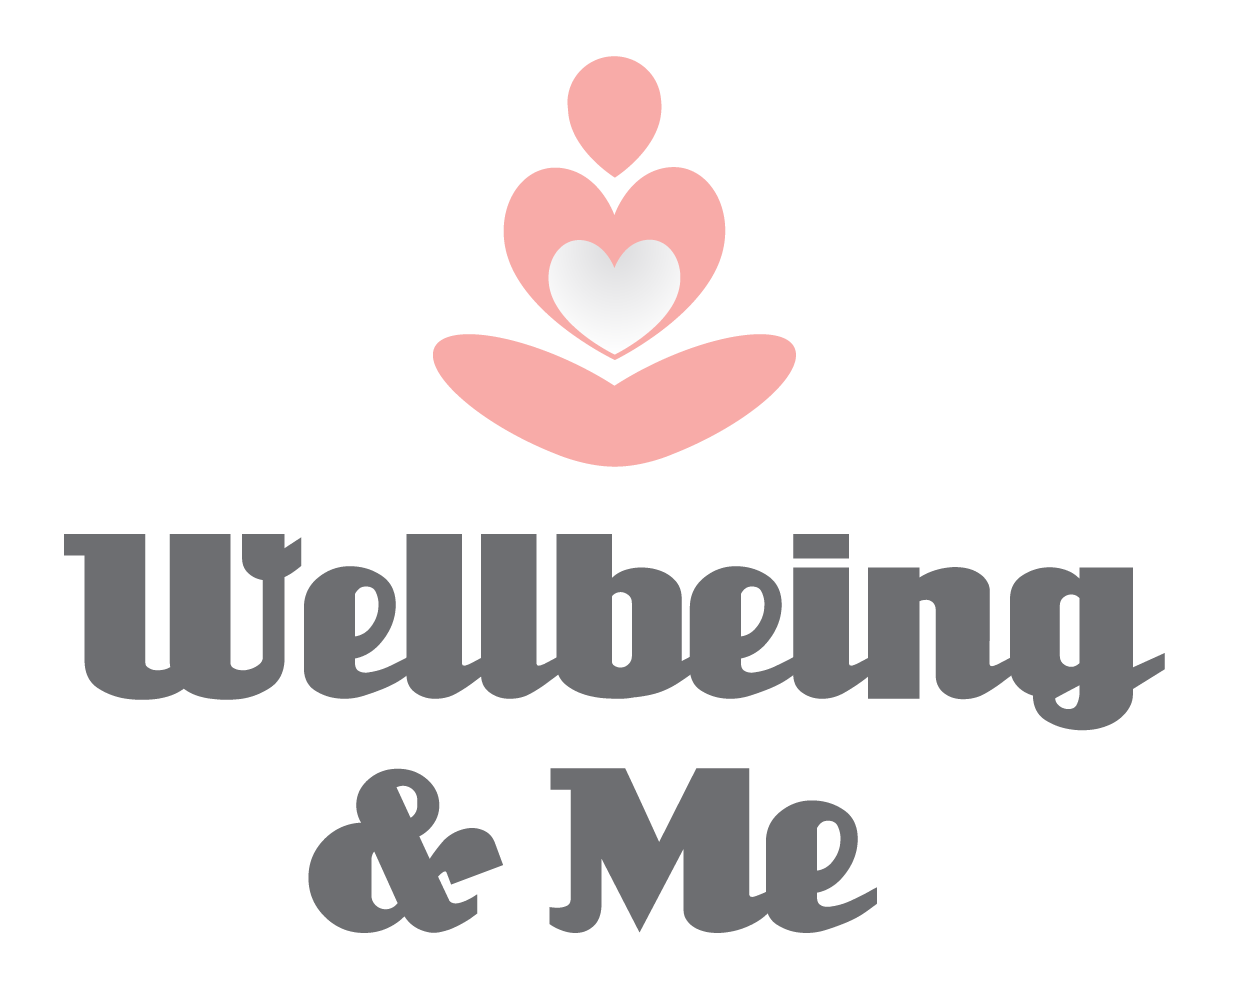 Wellbeing & Me